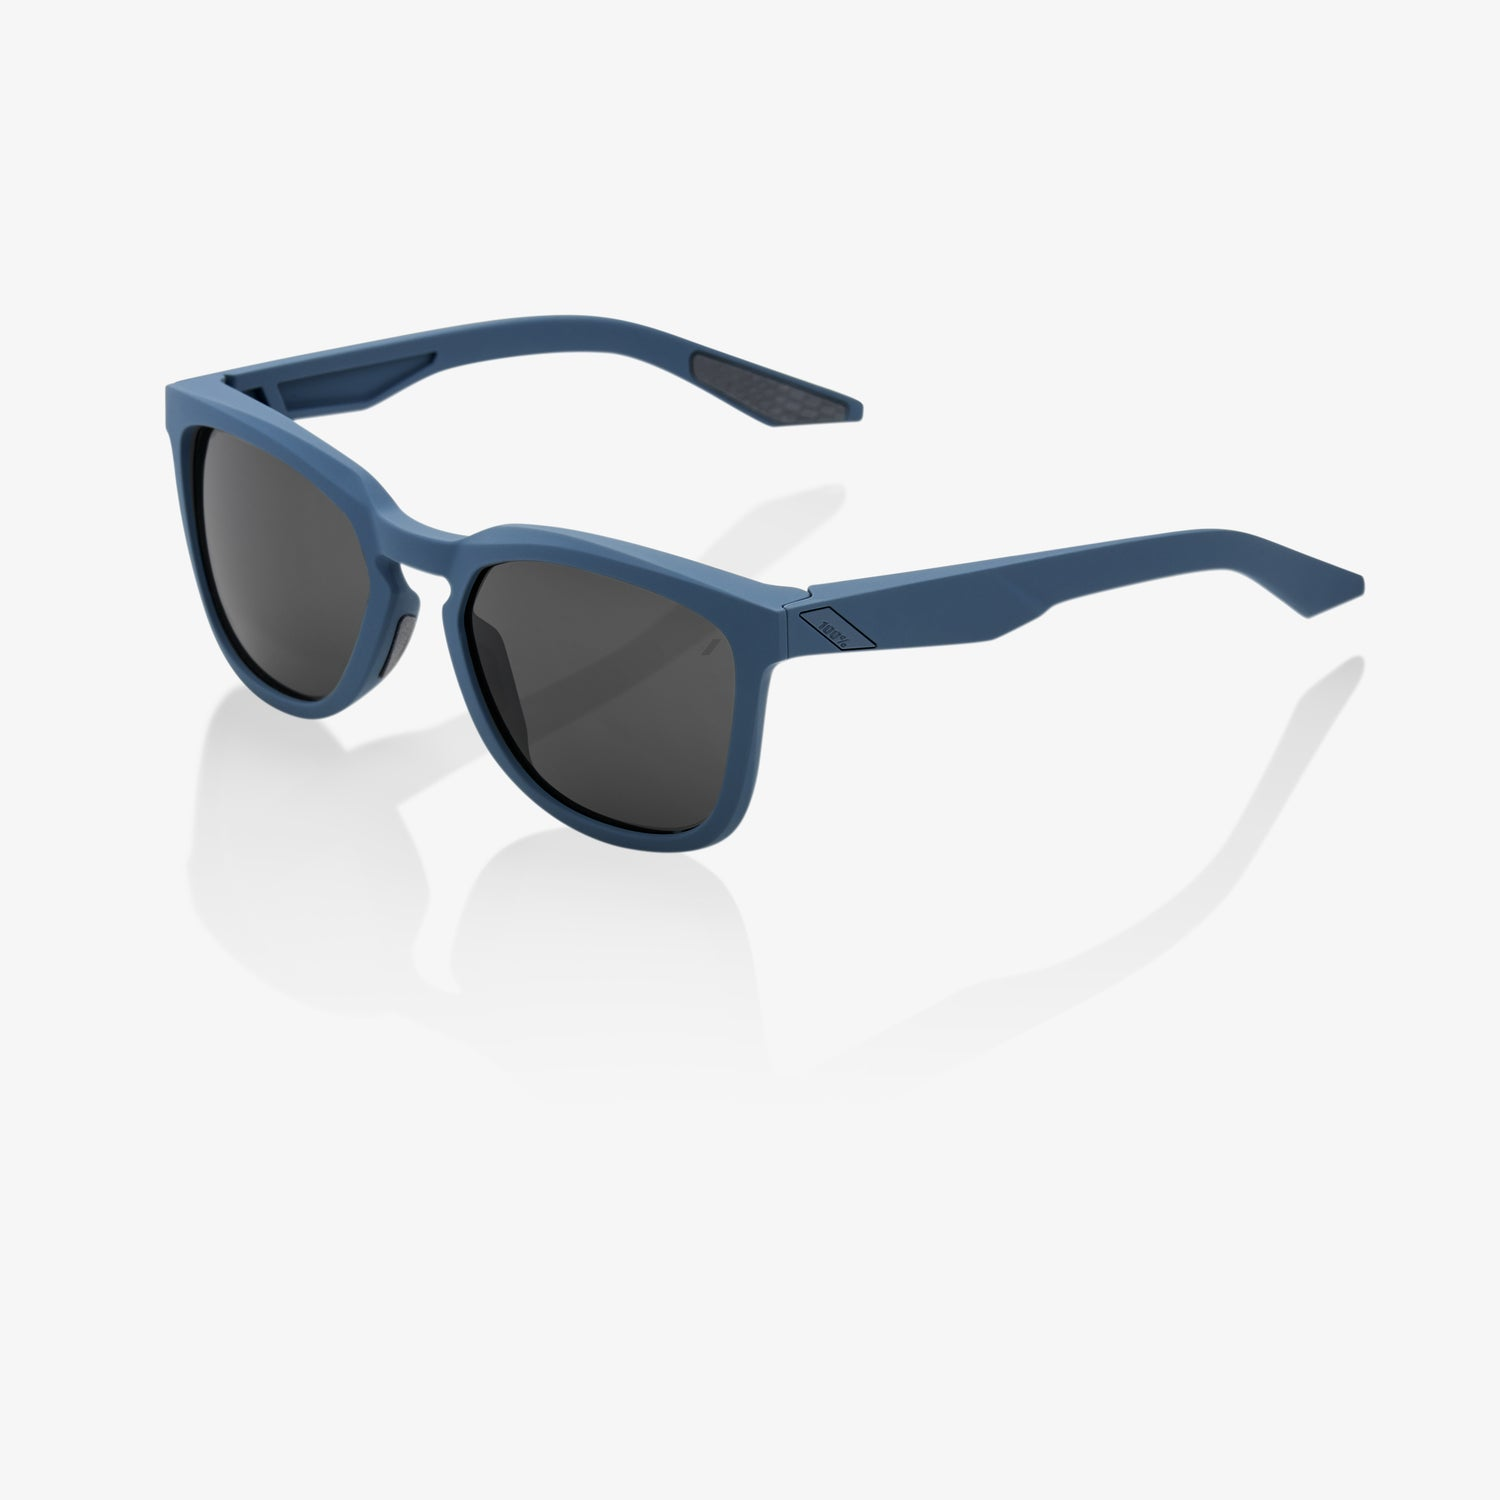 HUDSON - Soft Tact Blue - Smoke Lens